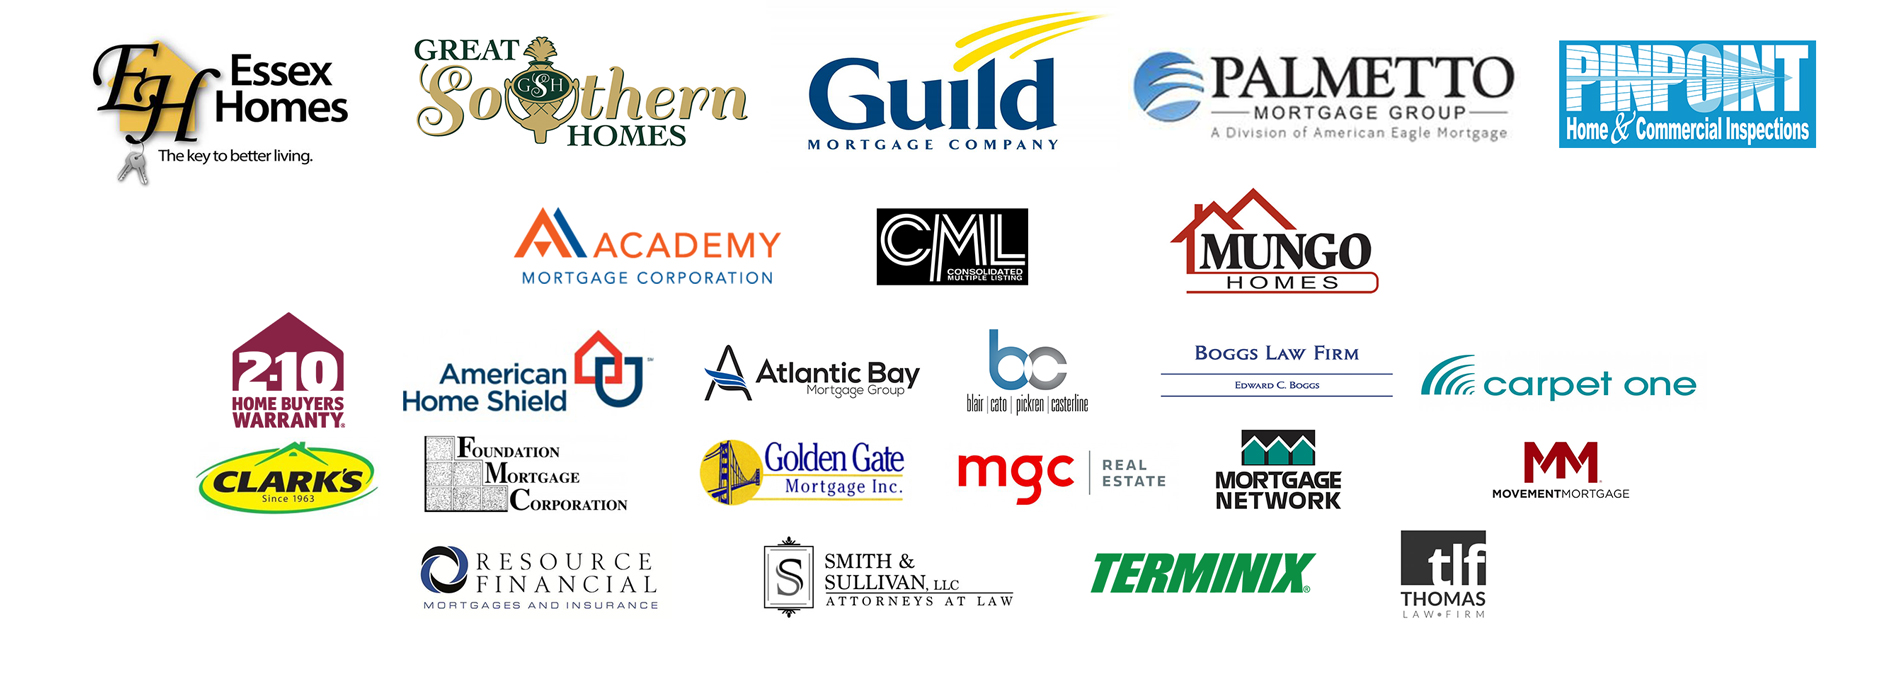 Residential Circle of Excellence Sponsors - 2016